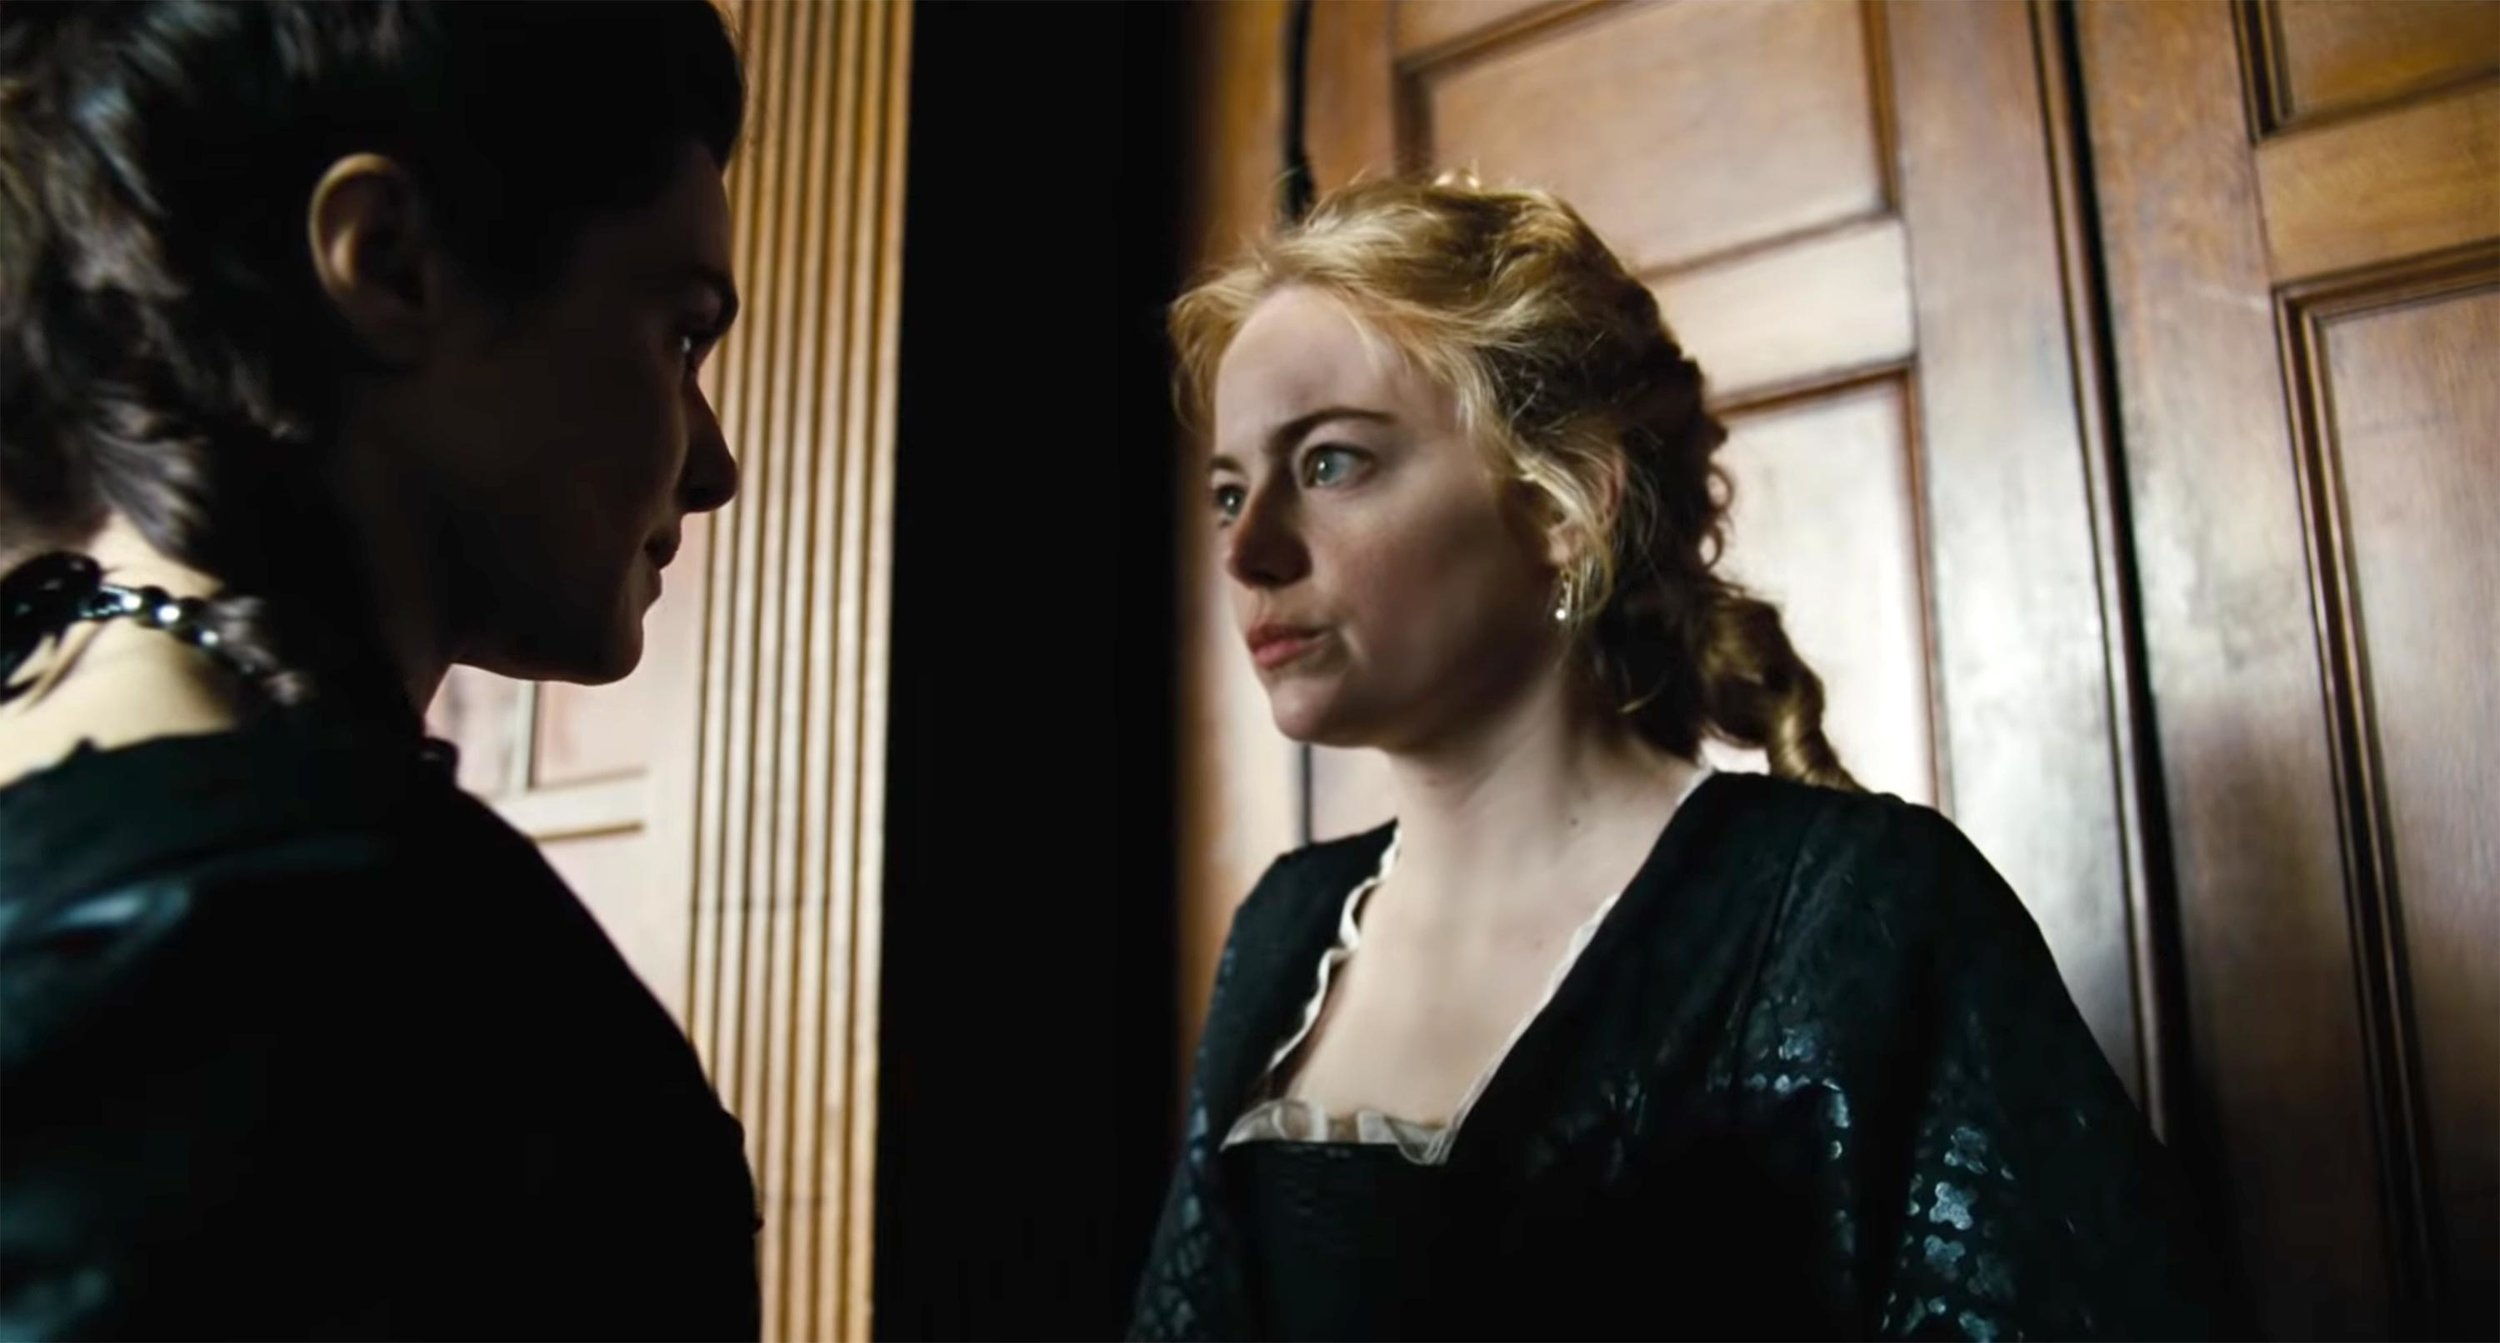 Sarah (Rachel Weisz) and Abigail (Emma Stone) in  The Favourite (2018).